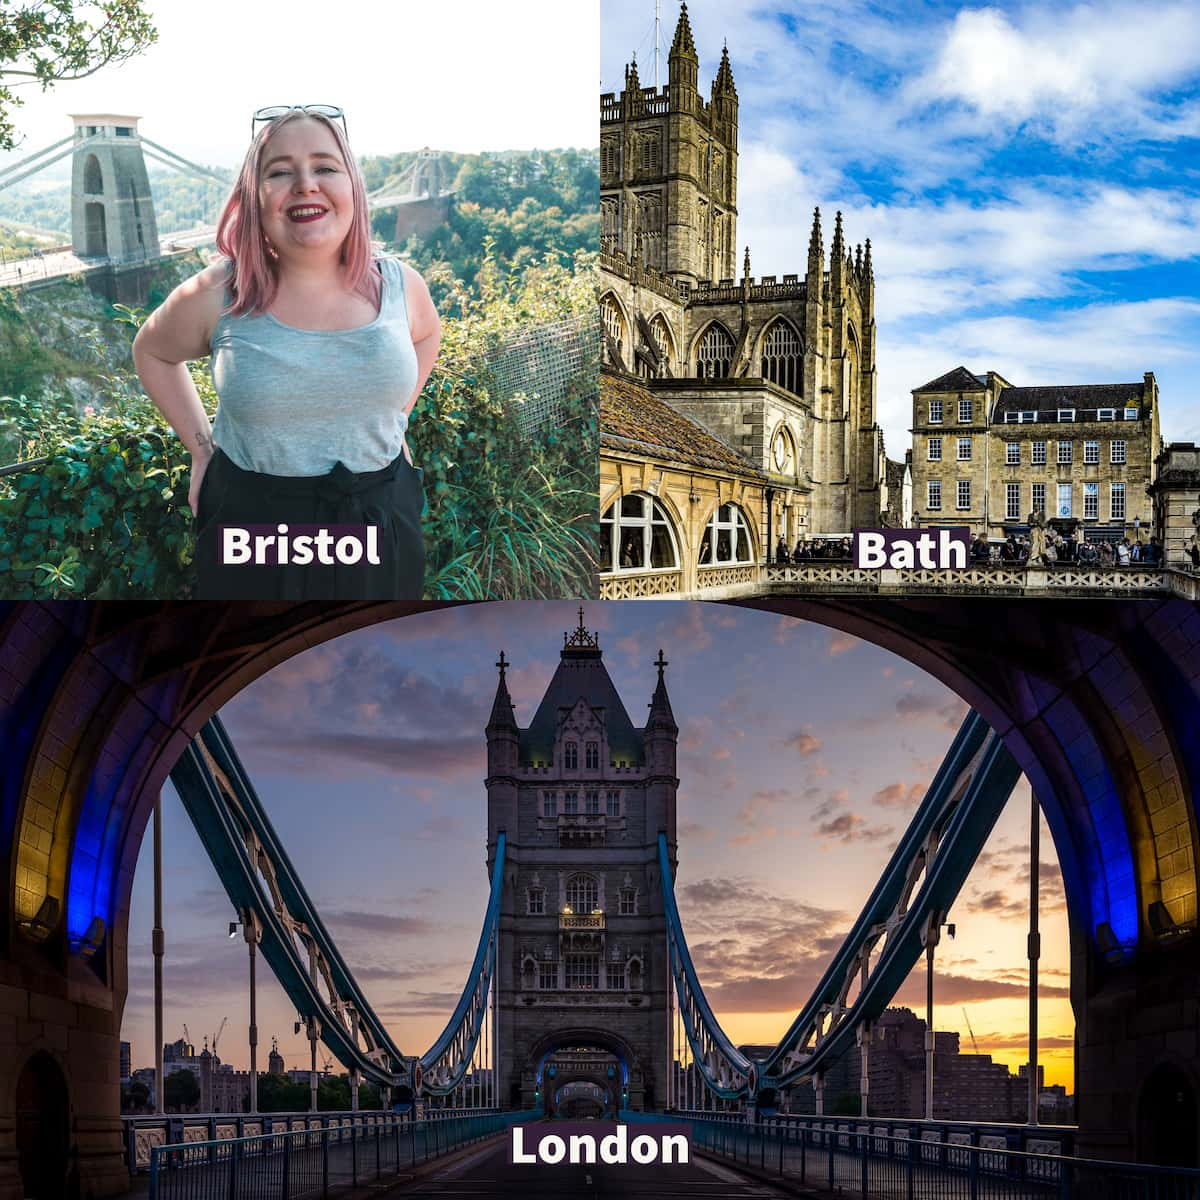 Top left, Kat at Clifton Bridge in Bristol, top right is the beautiful Bath building and bottom Tower Bridge.